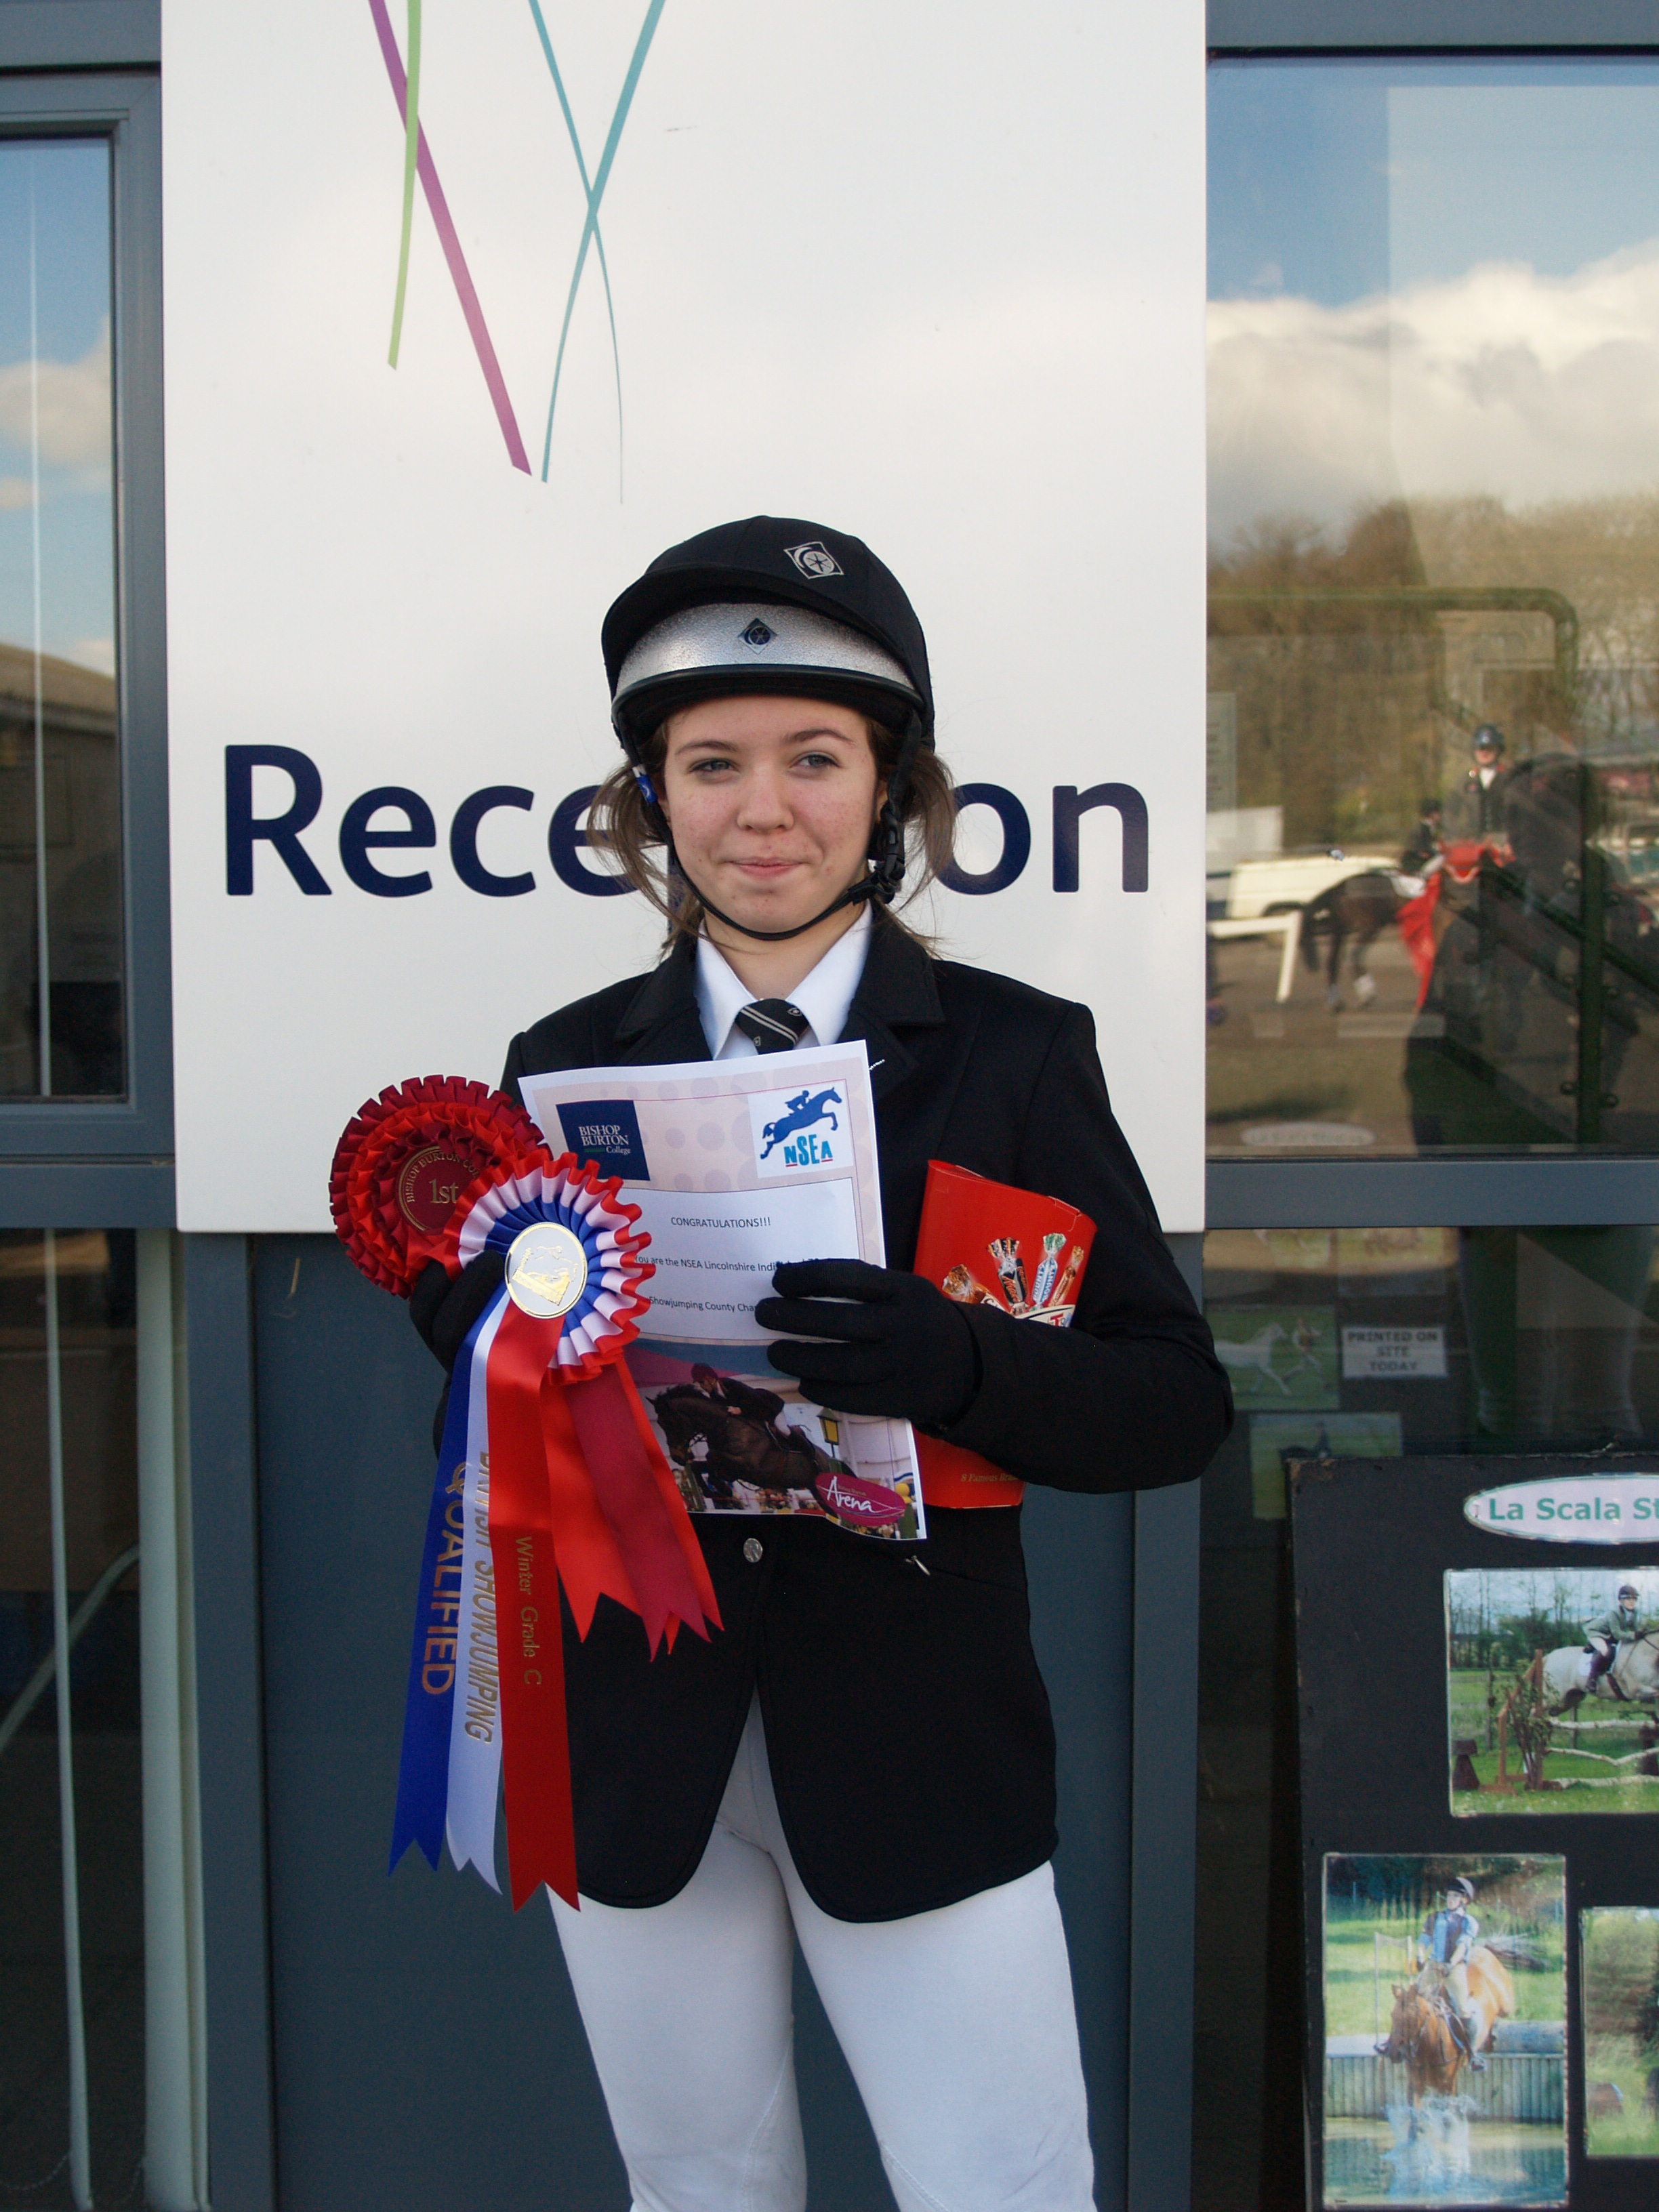 NSEA1 - An amazing double whammy for De Aston School  Equestrian Team